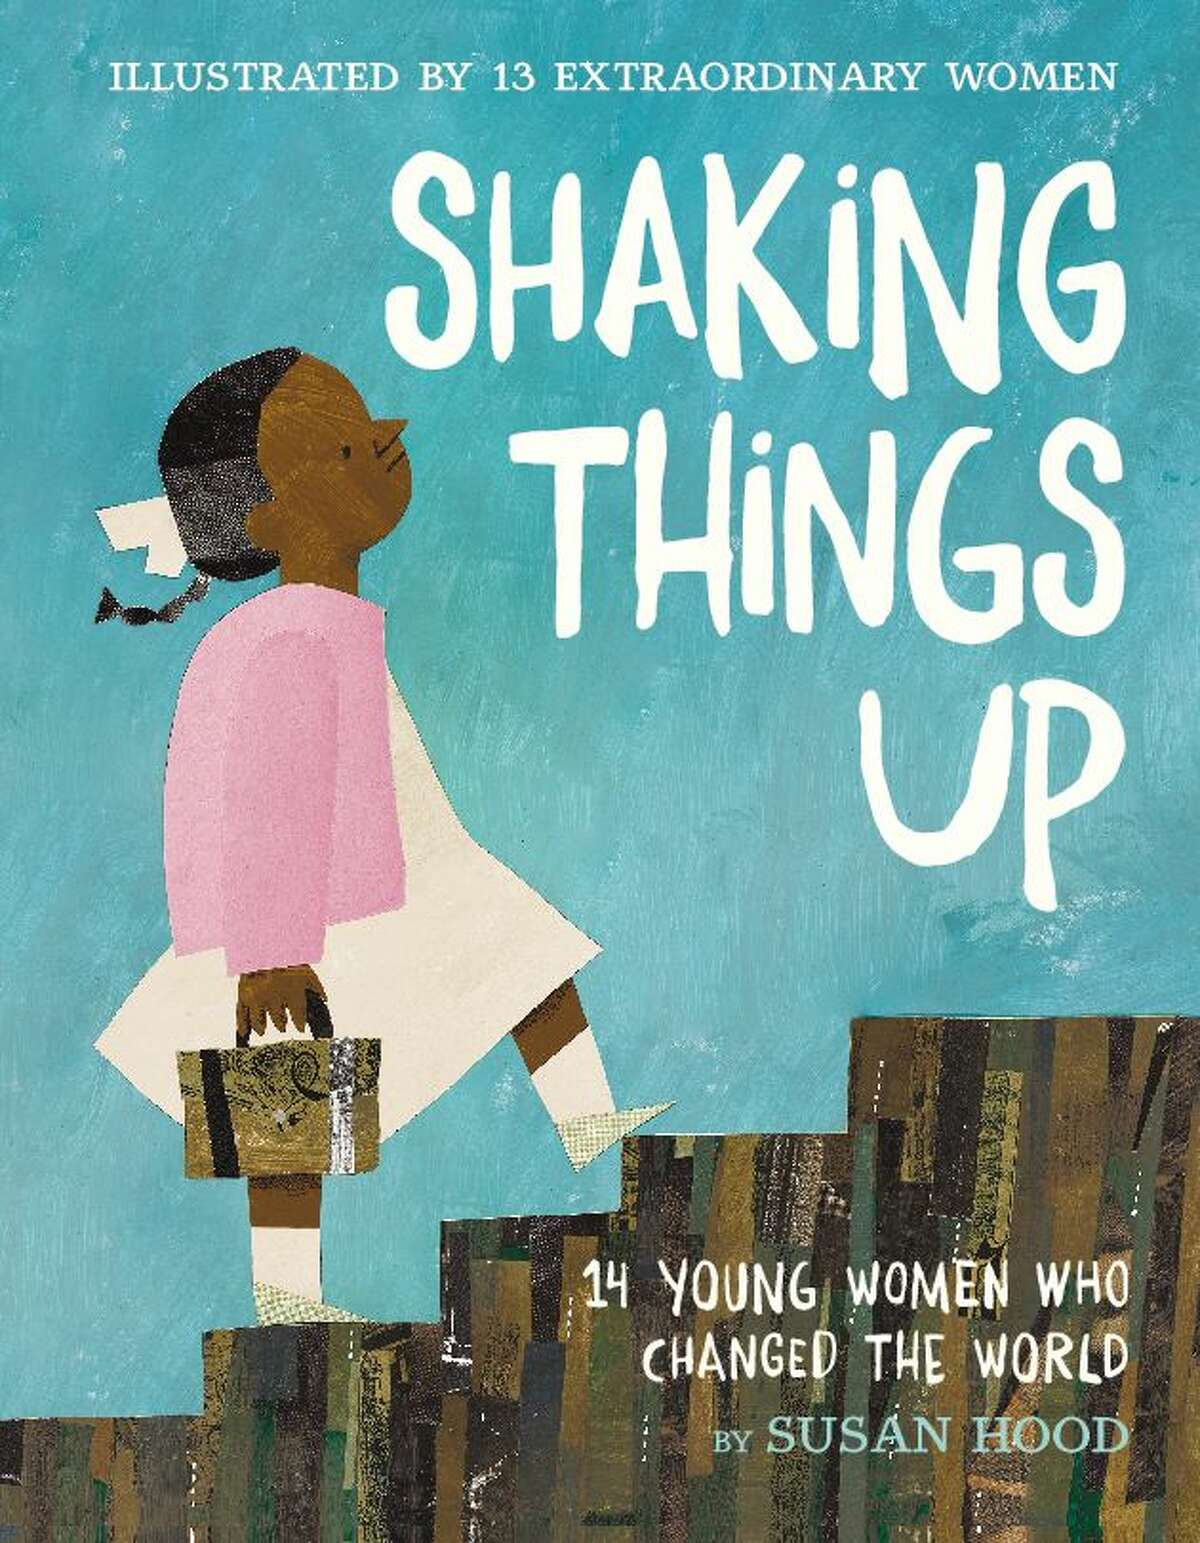 CHILDREN'S BOOKS: Shaking Things Up: 14 Young Women Who Changed the World by Susan Hood. Illustrated by Sophie Blackall, Emily Winfield Martin, Shadra Strickland, Melissa Sweet, LeUyen Pham, Oge Mora, Julie Morstad, Lisa Brown, Selina Alko, Isabel Roxas, Sara Palacios. HarperCollins 40 pgs. $18.99 Ages 4-8